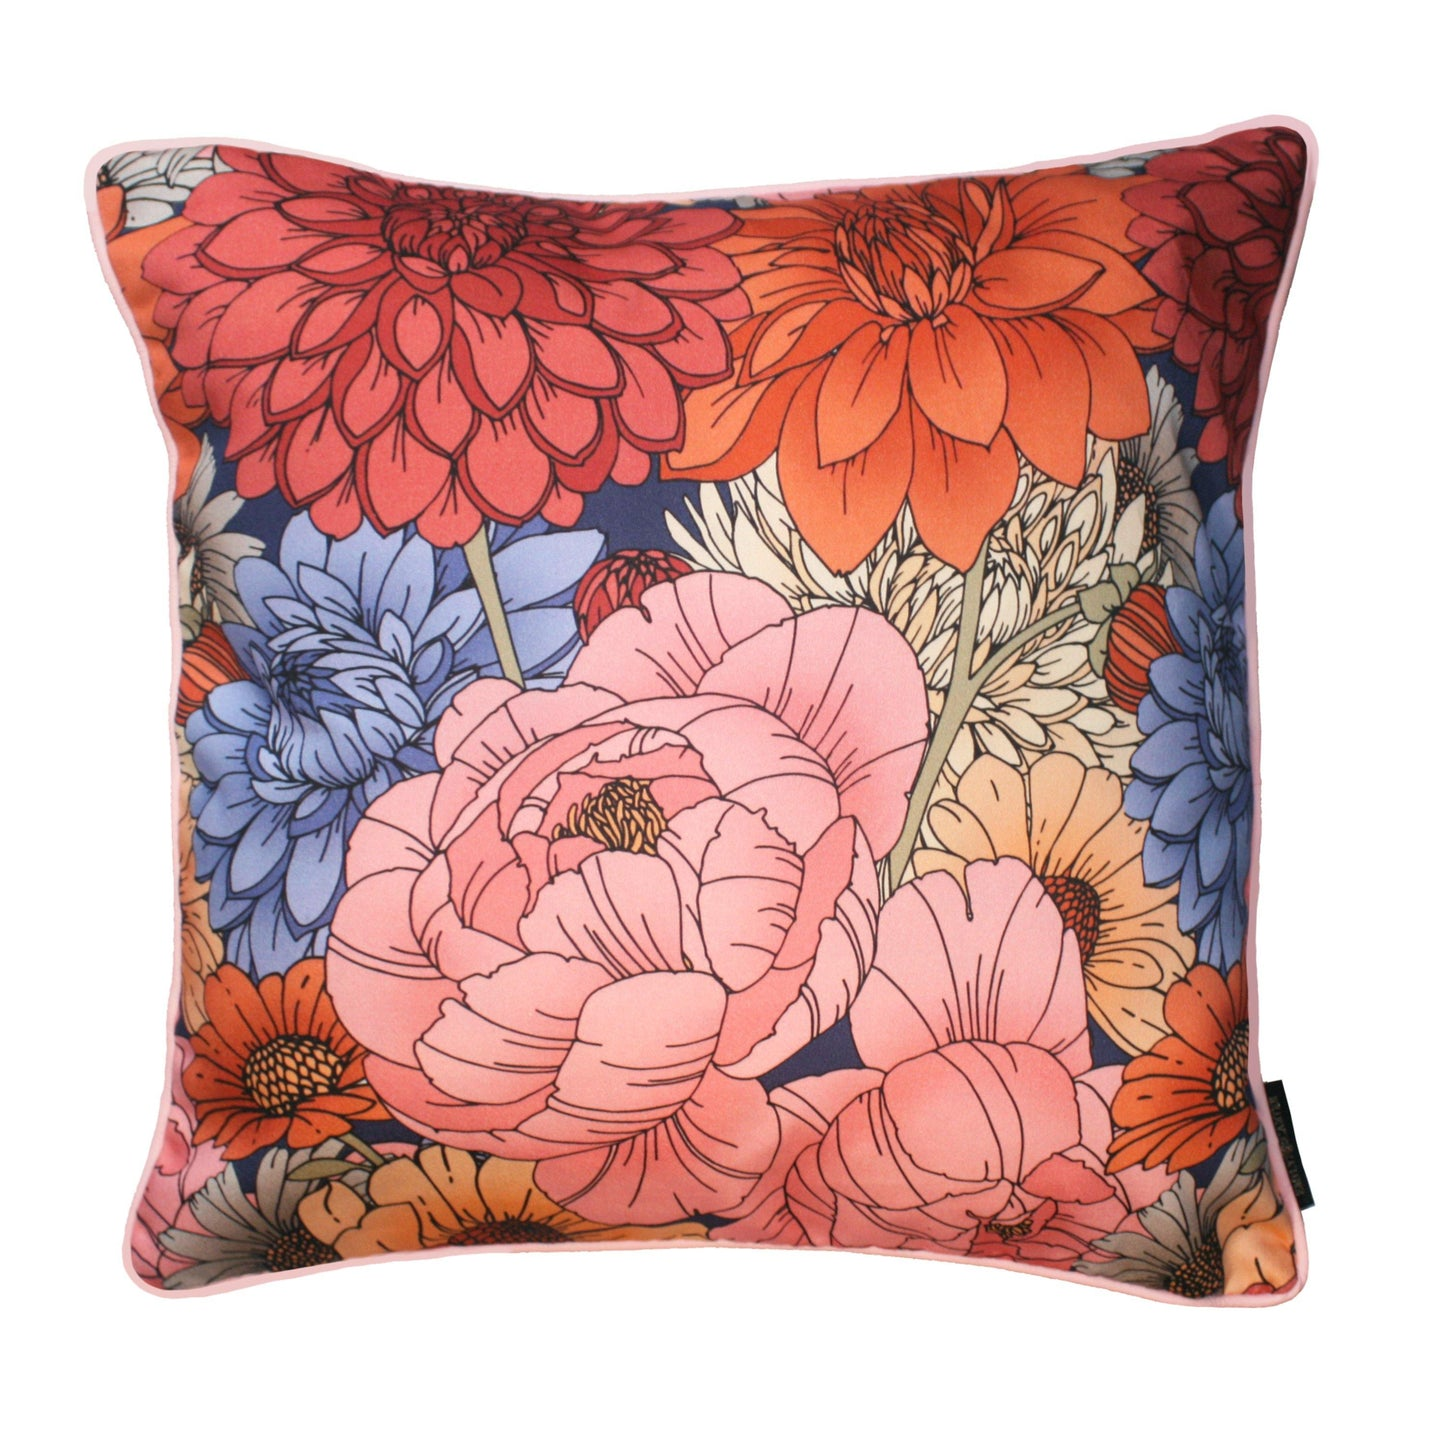 The Antique Floral Cushion | 45x45cm - Emily Carter London